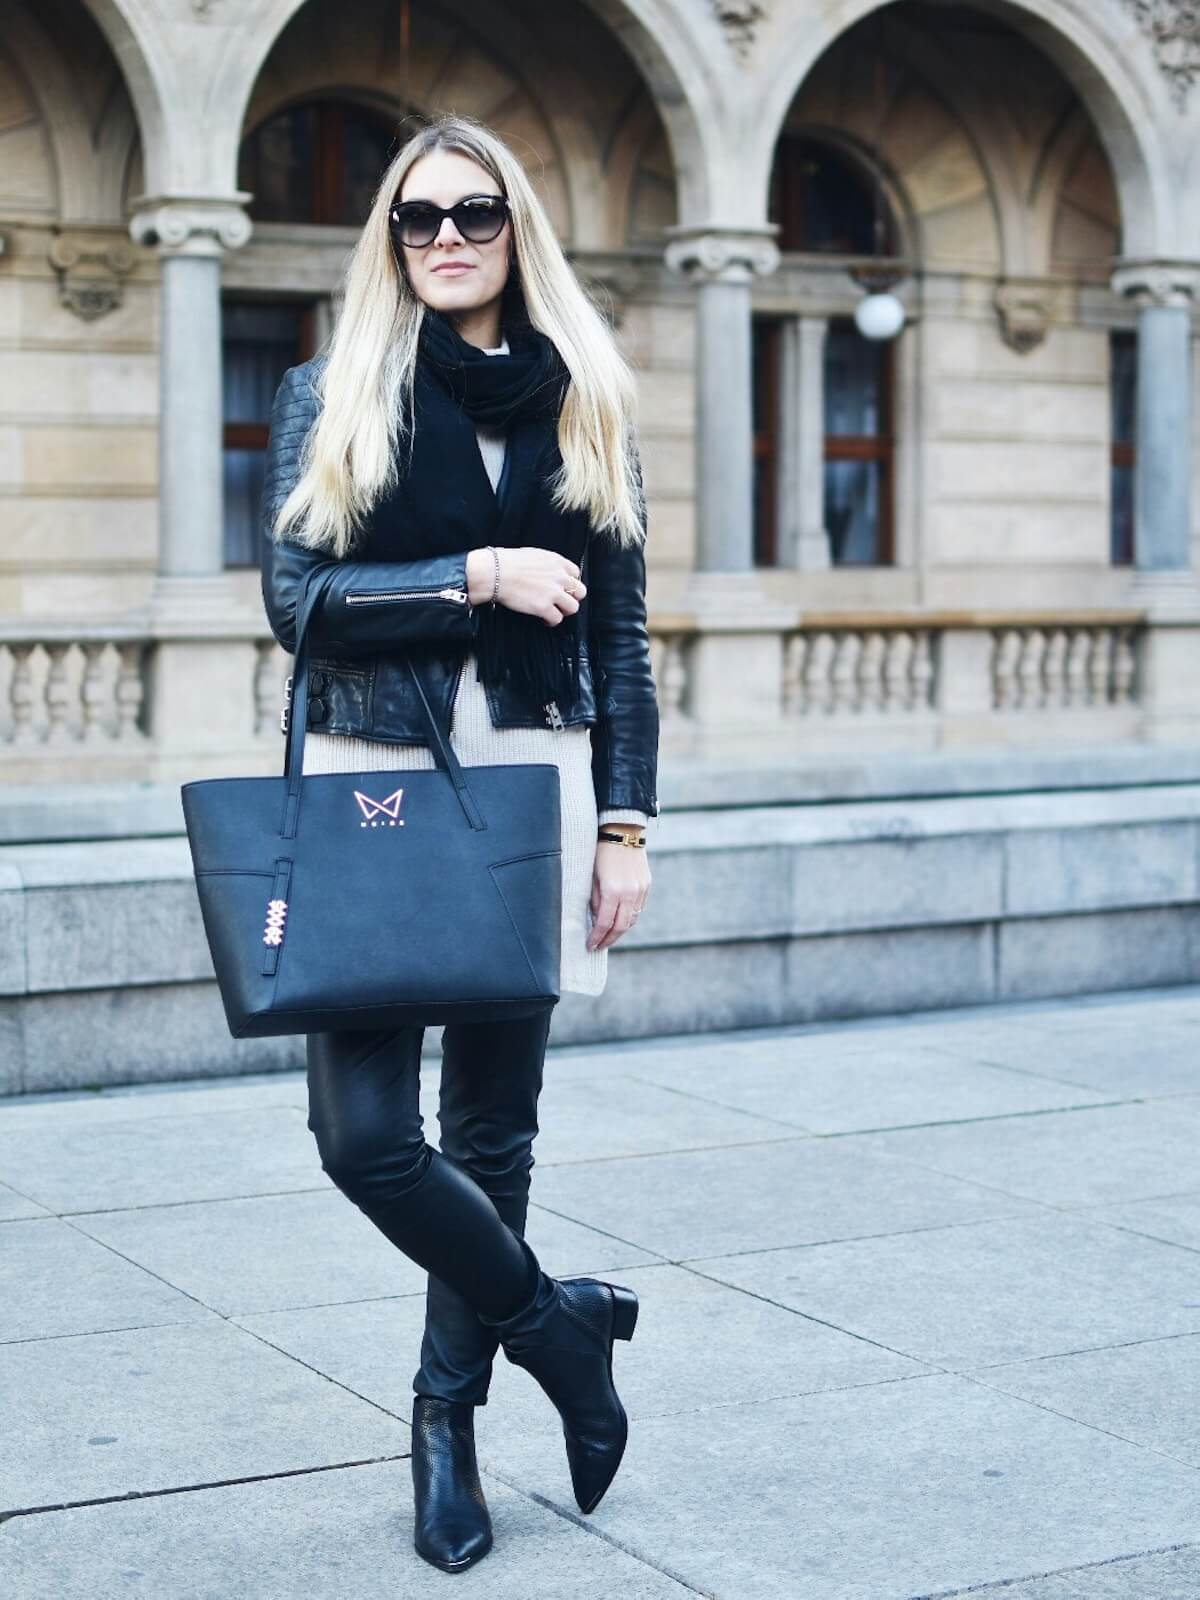 Handbag Noire fashion